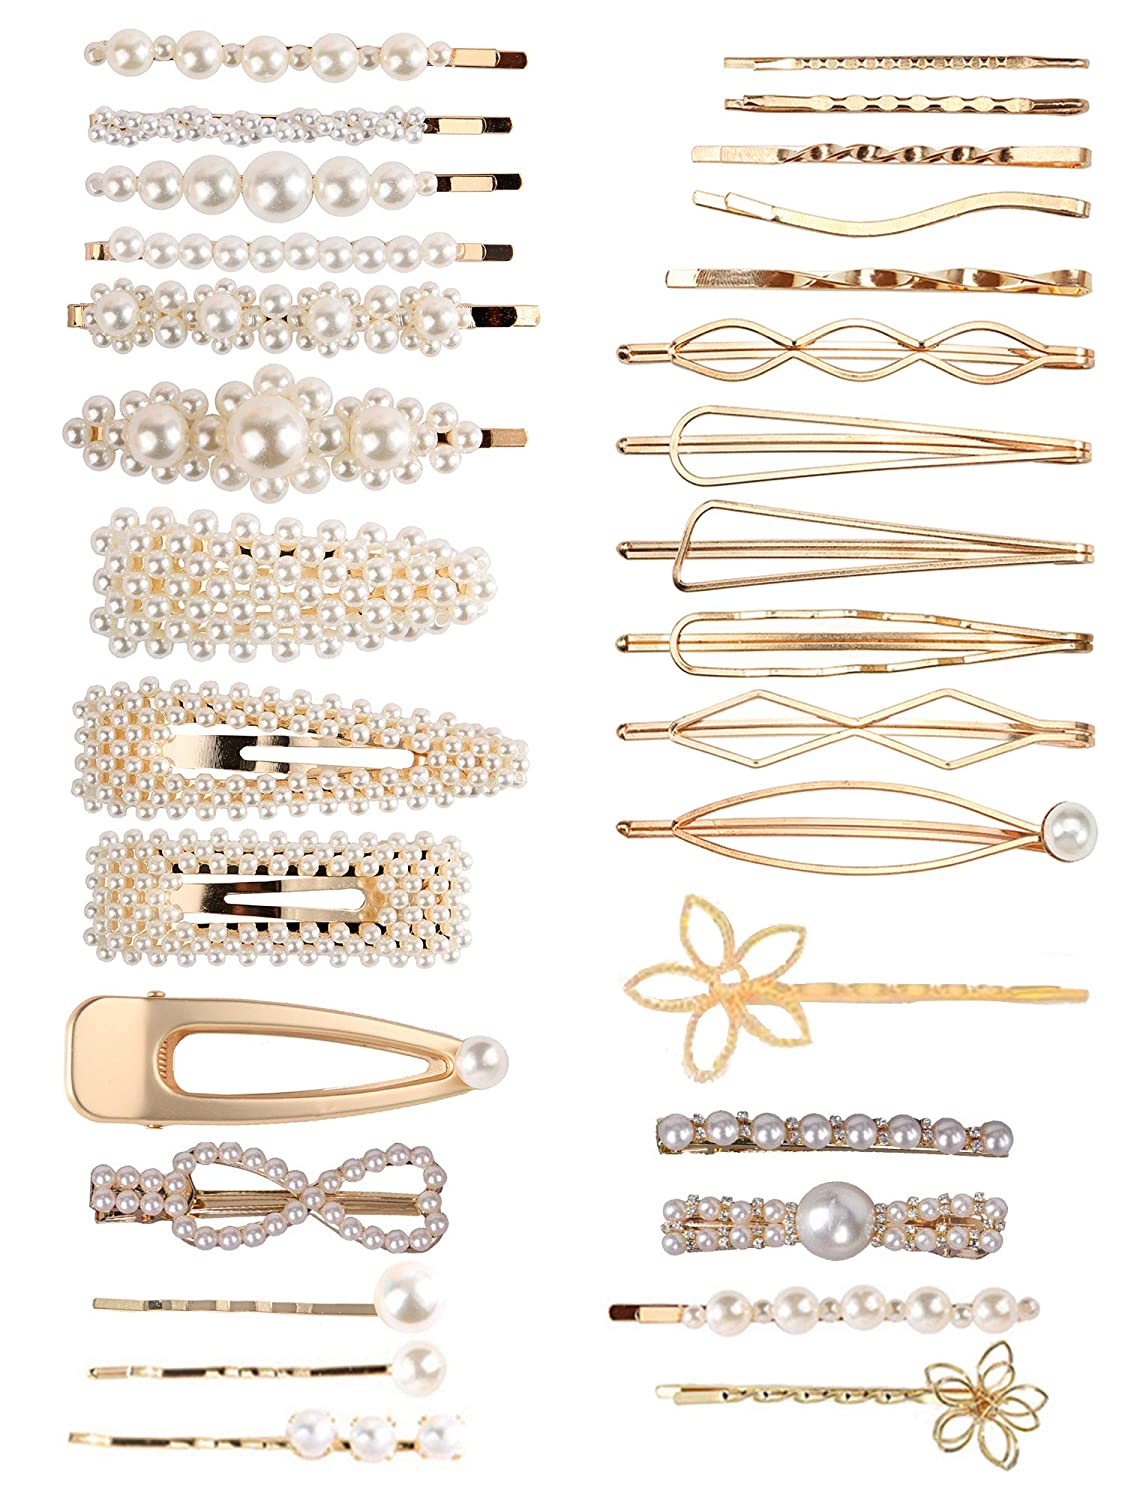 Details about  /50PCS Trinket Gifts Headwear Alloy U-shaped Hairclips Waved Hair Pins Barrette